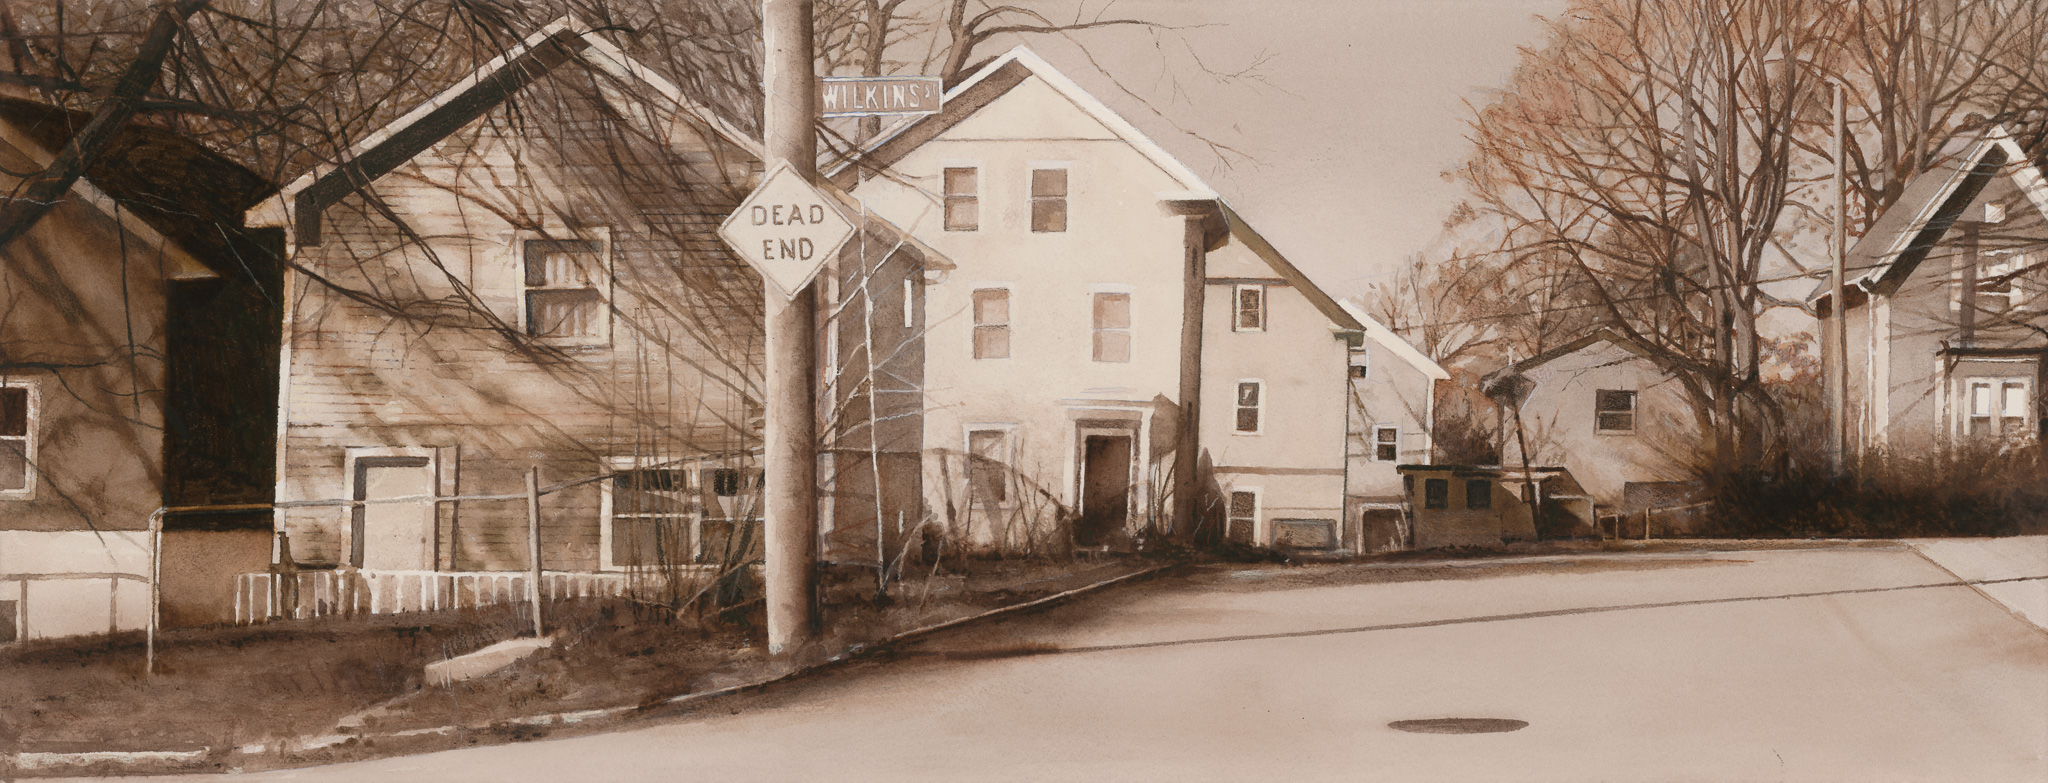 Mary Snowden Dead End